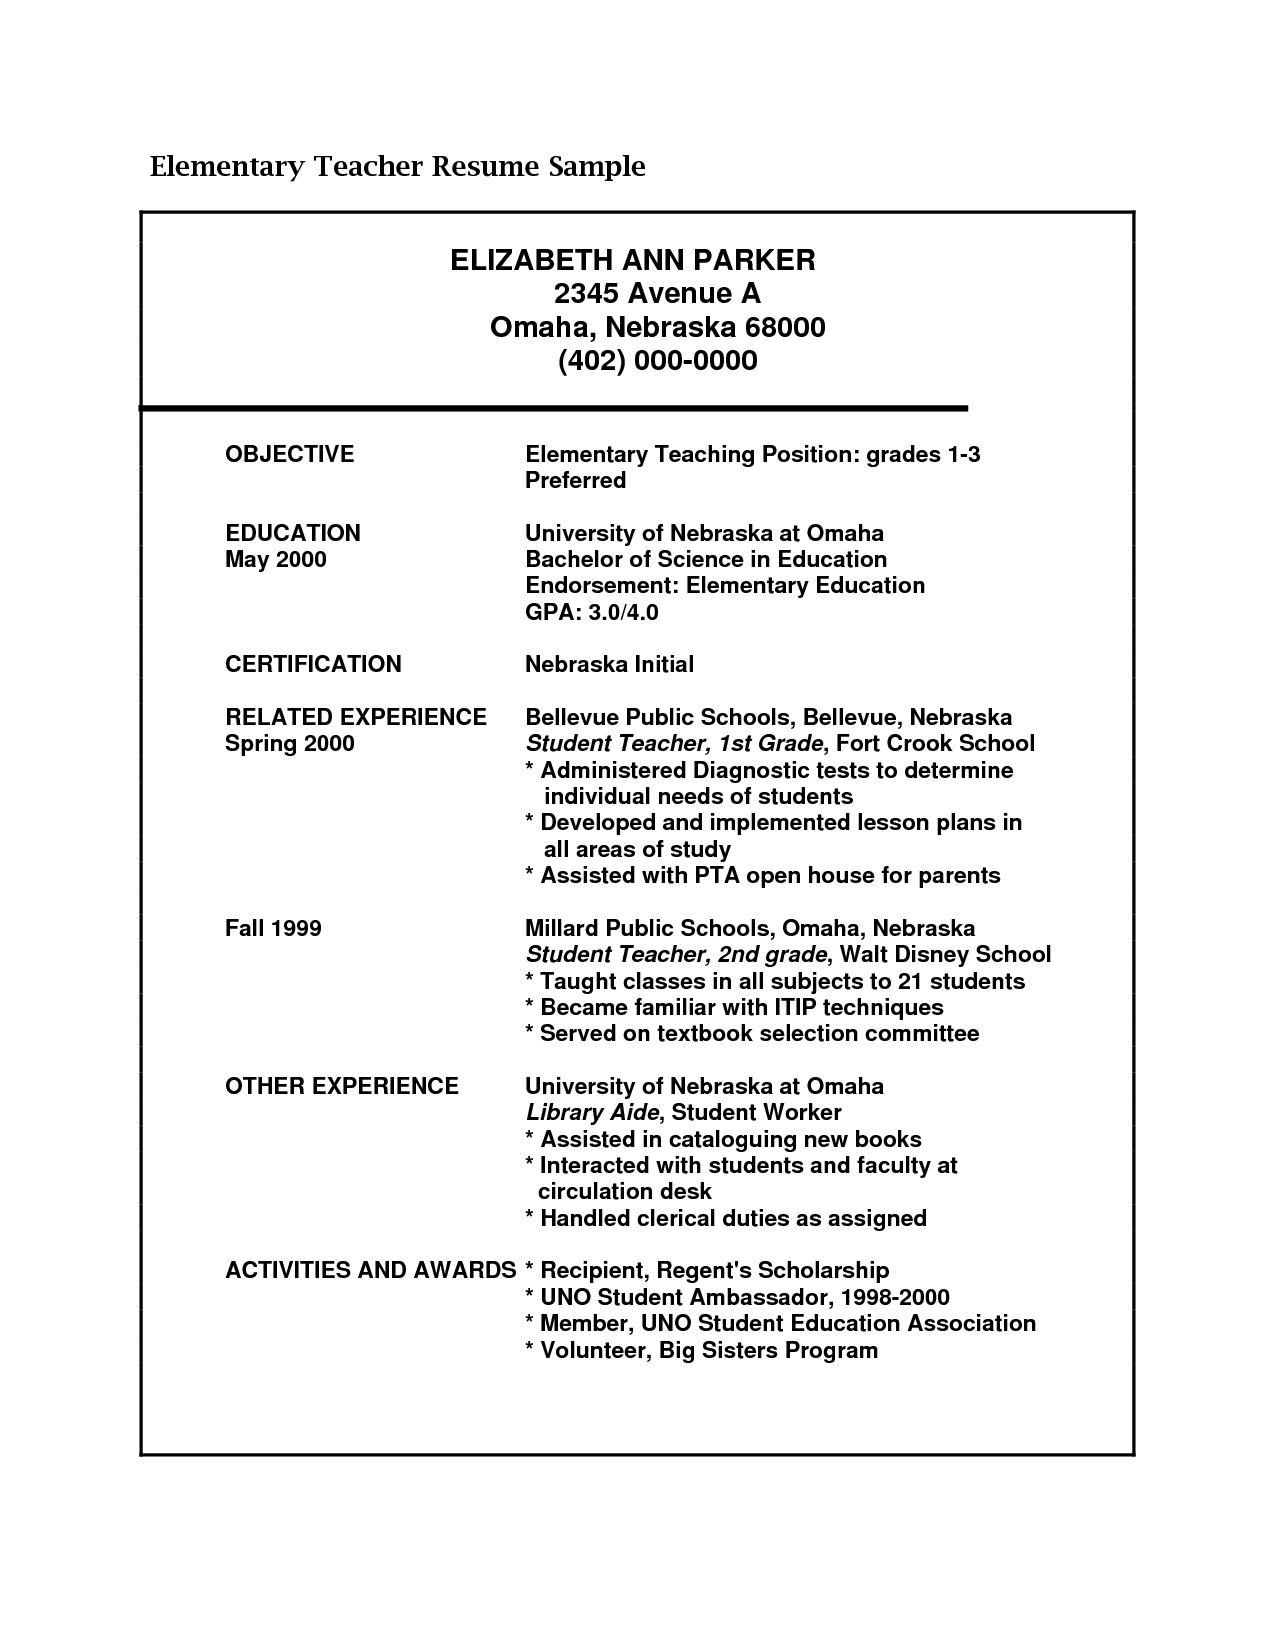 Resume Education Example Glamorous Science Teacher Resume Objective  Httpwwwresumecareer Review